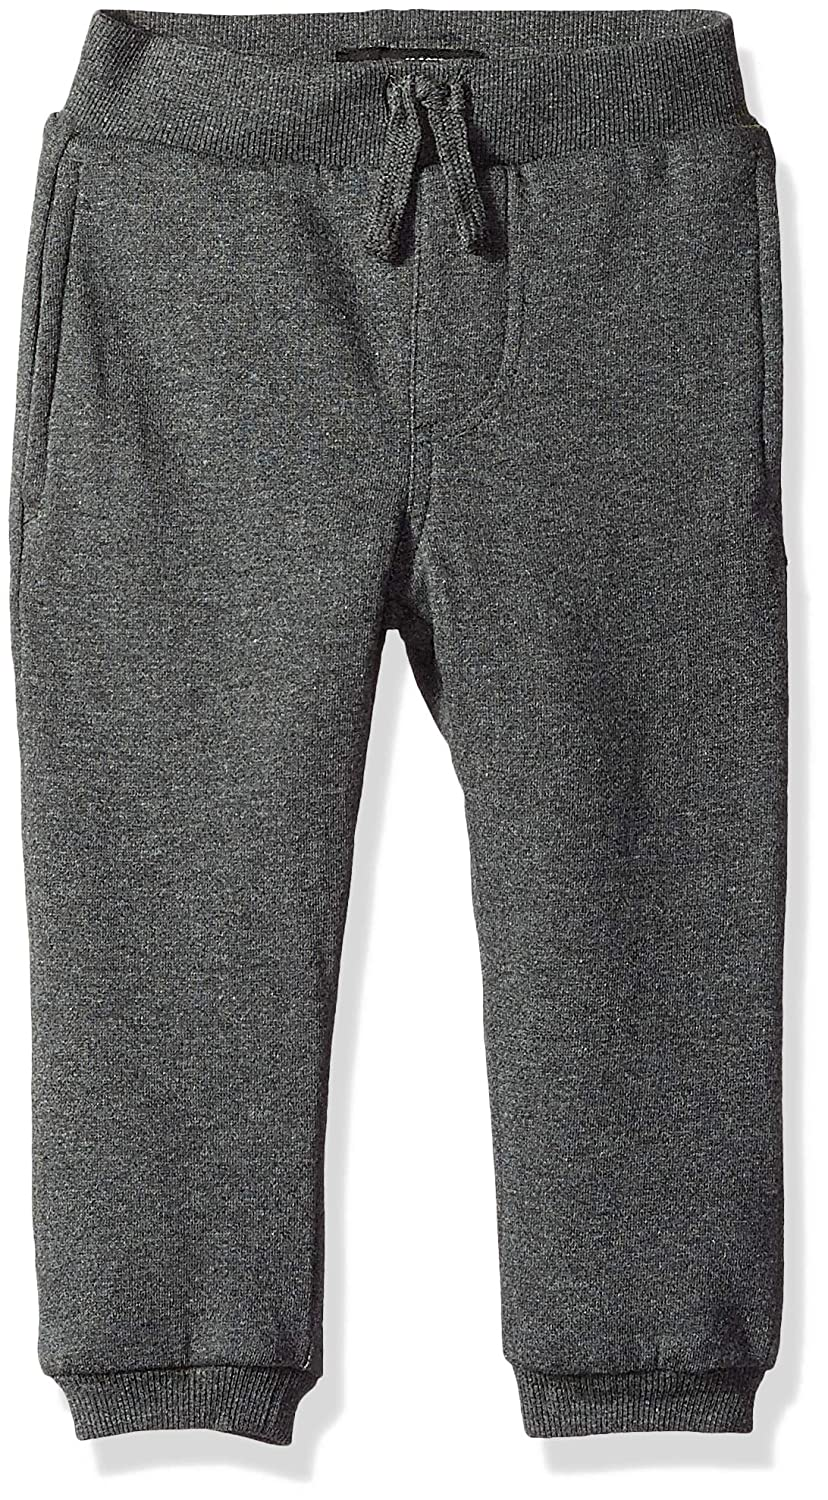 LEE Boys' Lined Jogger Pant